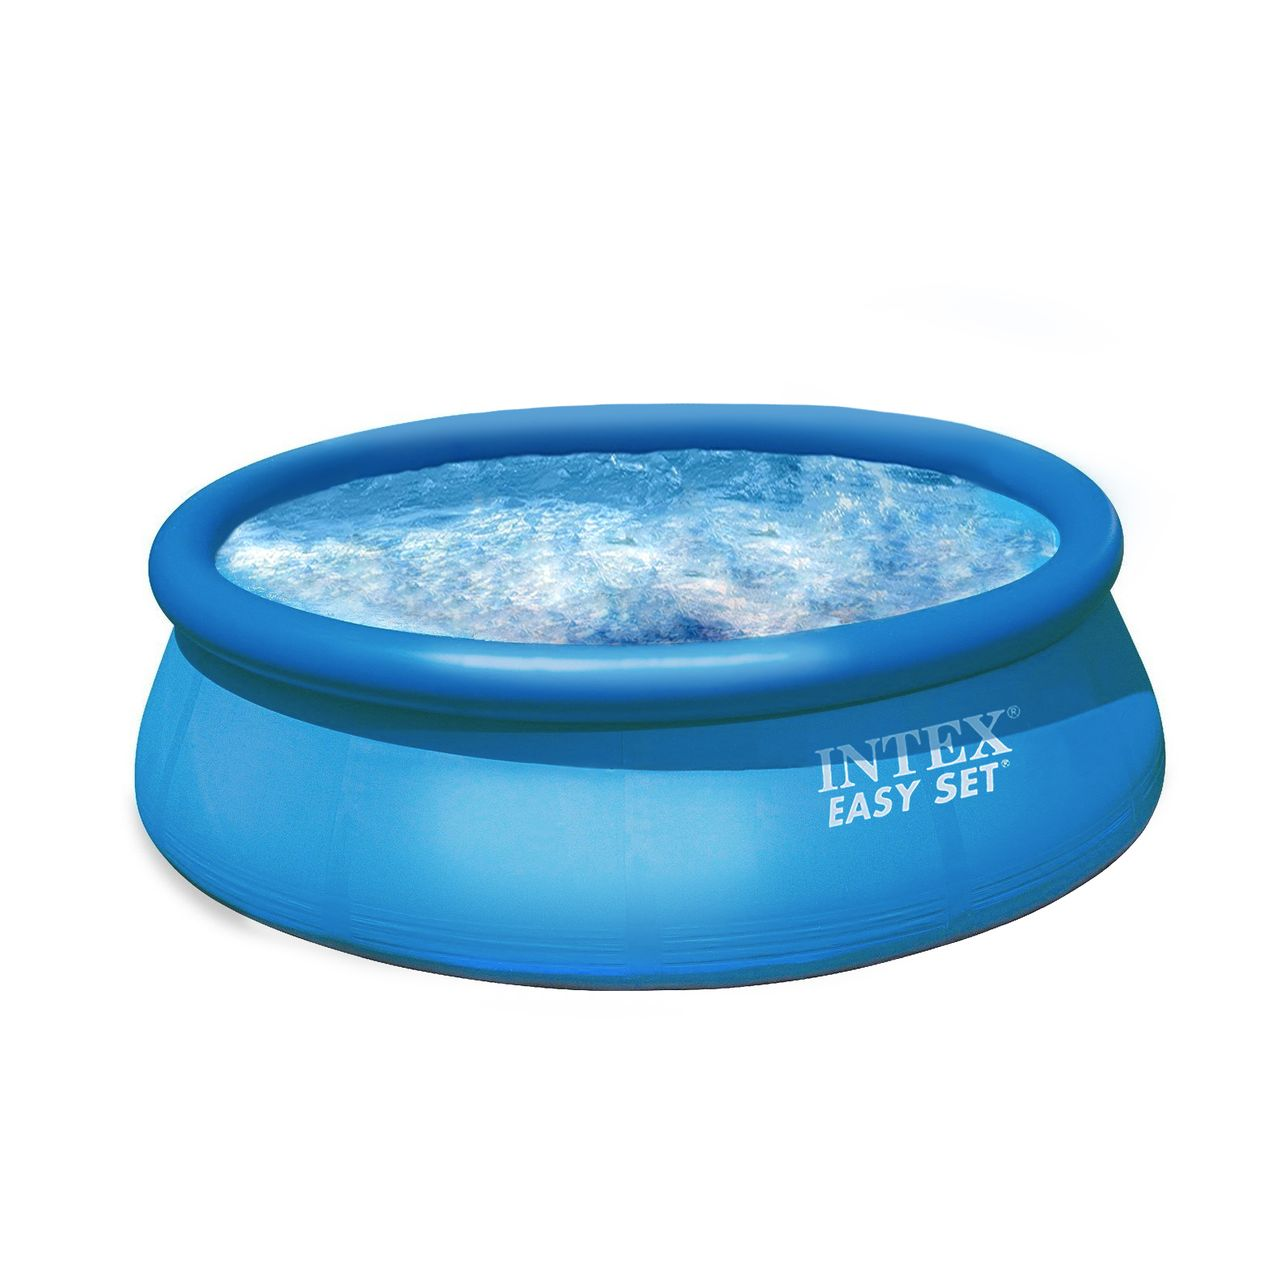 Intex easy set pool set blau 366 x 76 cm mit pumpe ebay for Pool selbstaufstellend